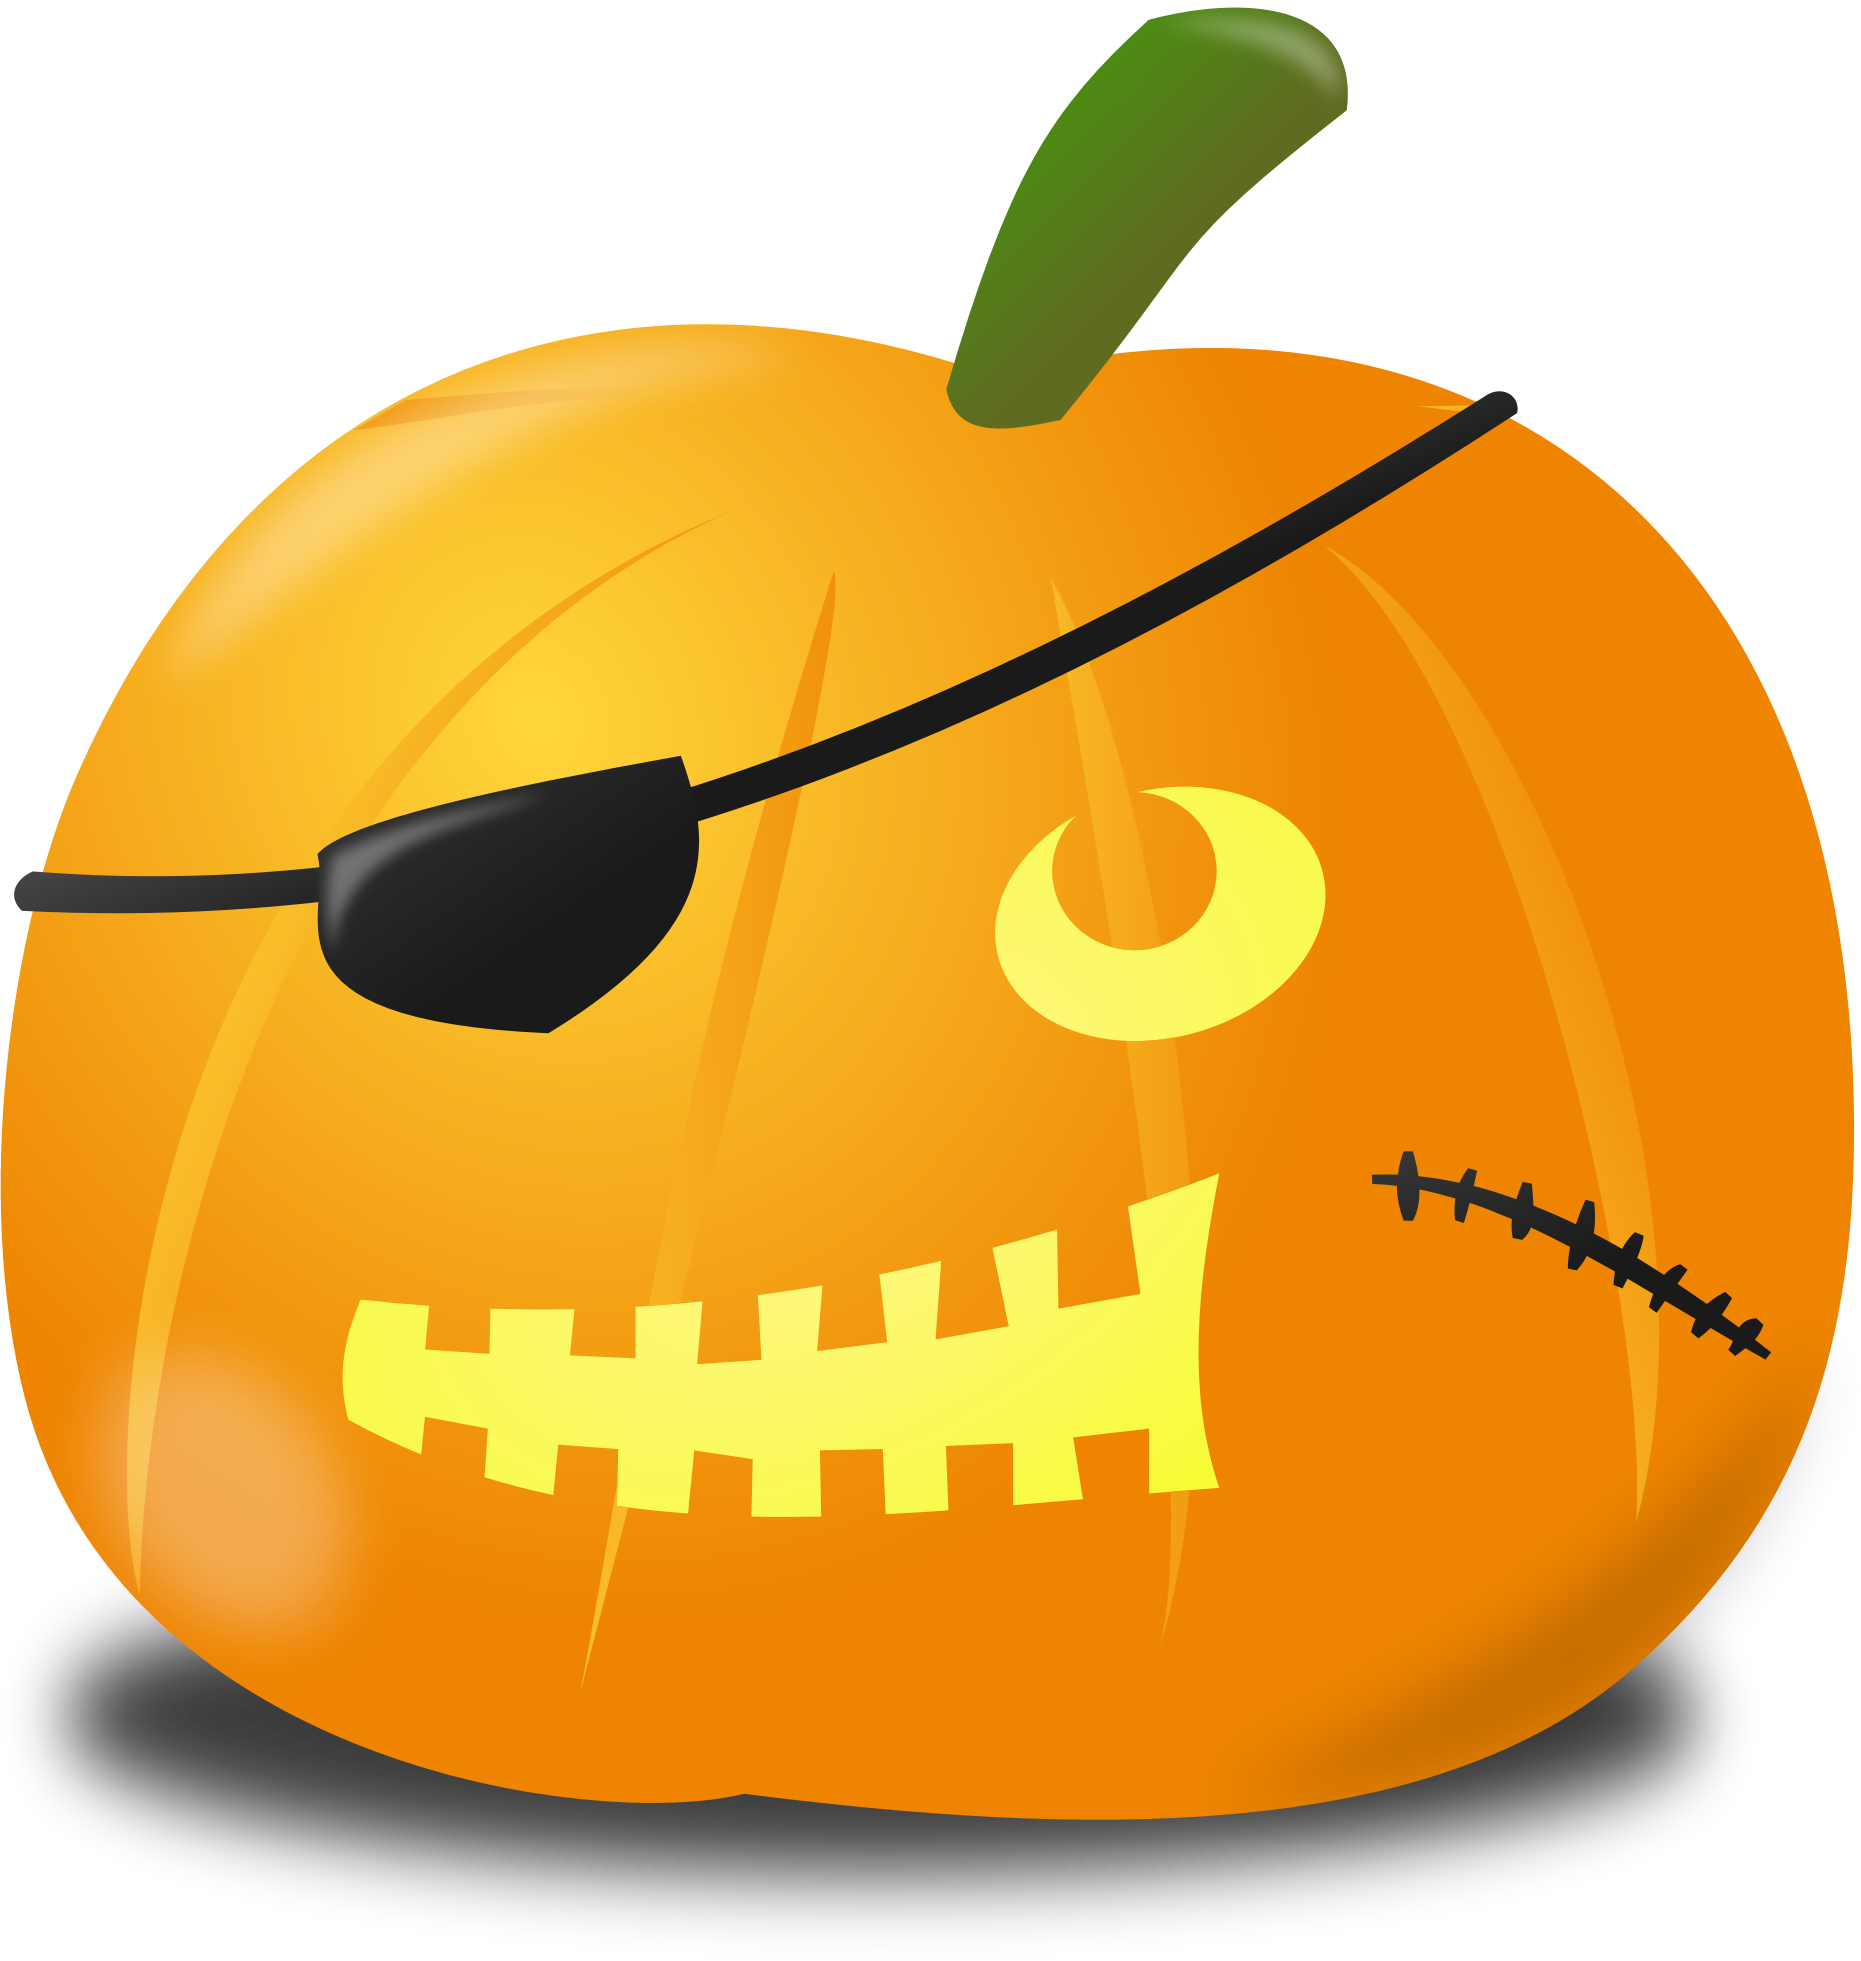 Spooky Halloween Pumpkins messages sticker-3